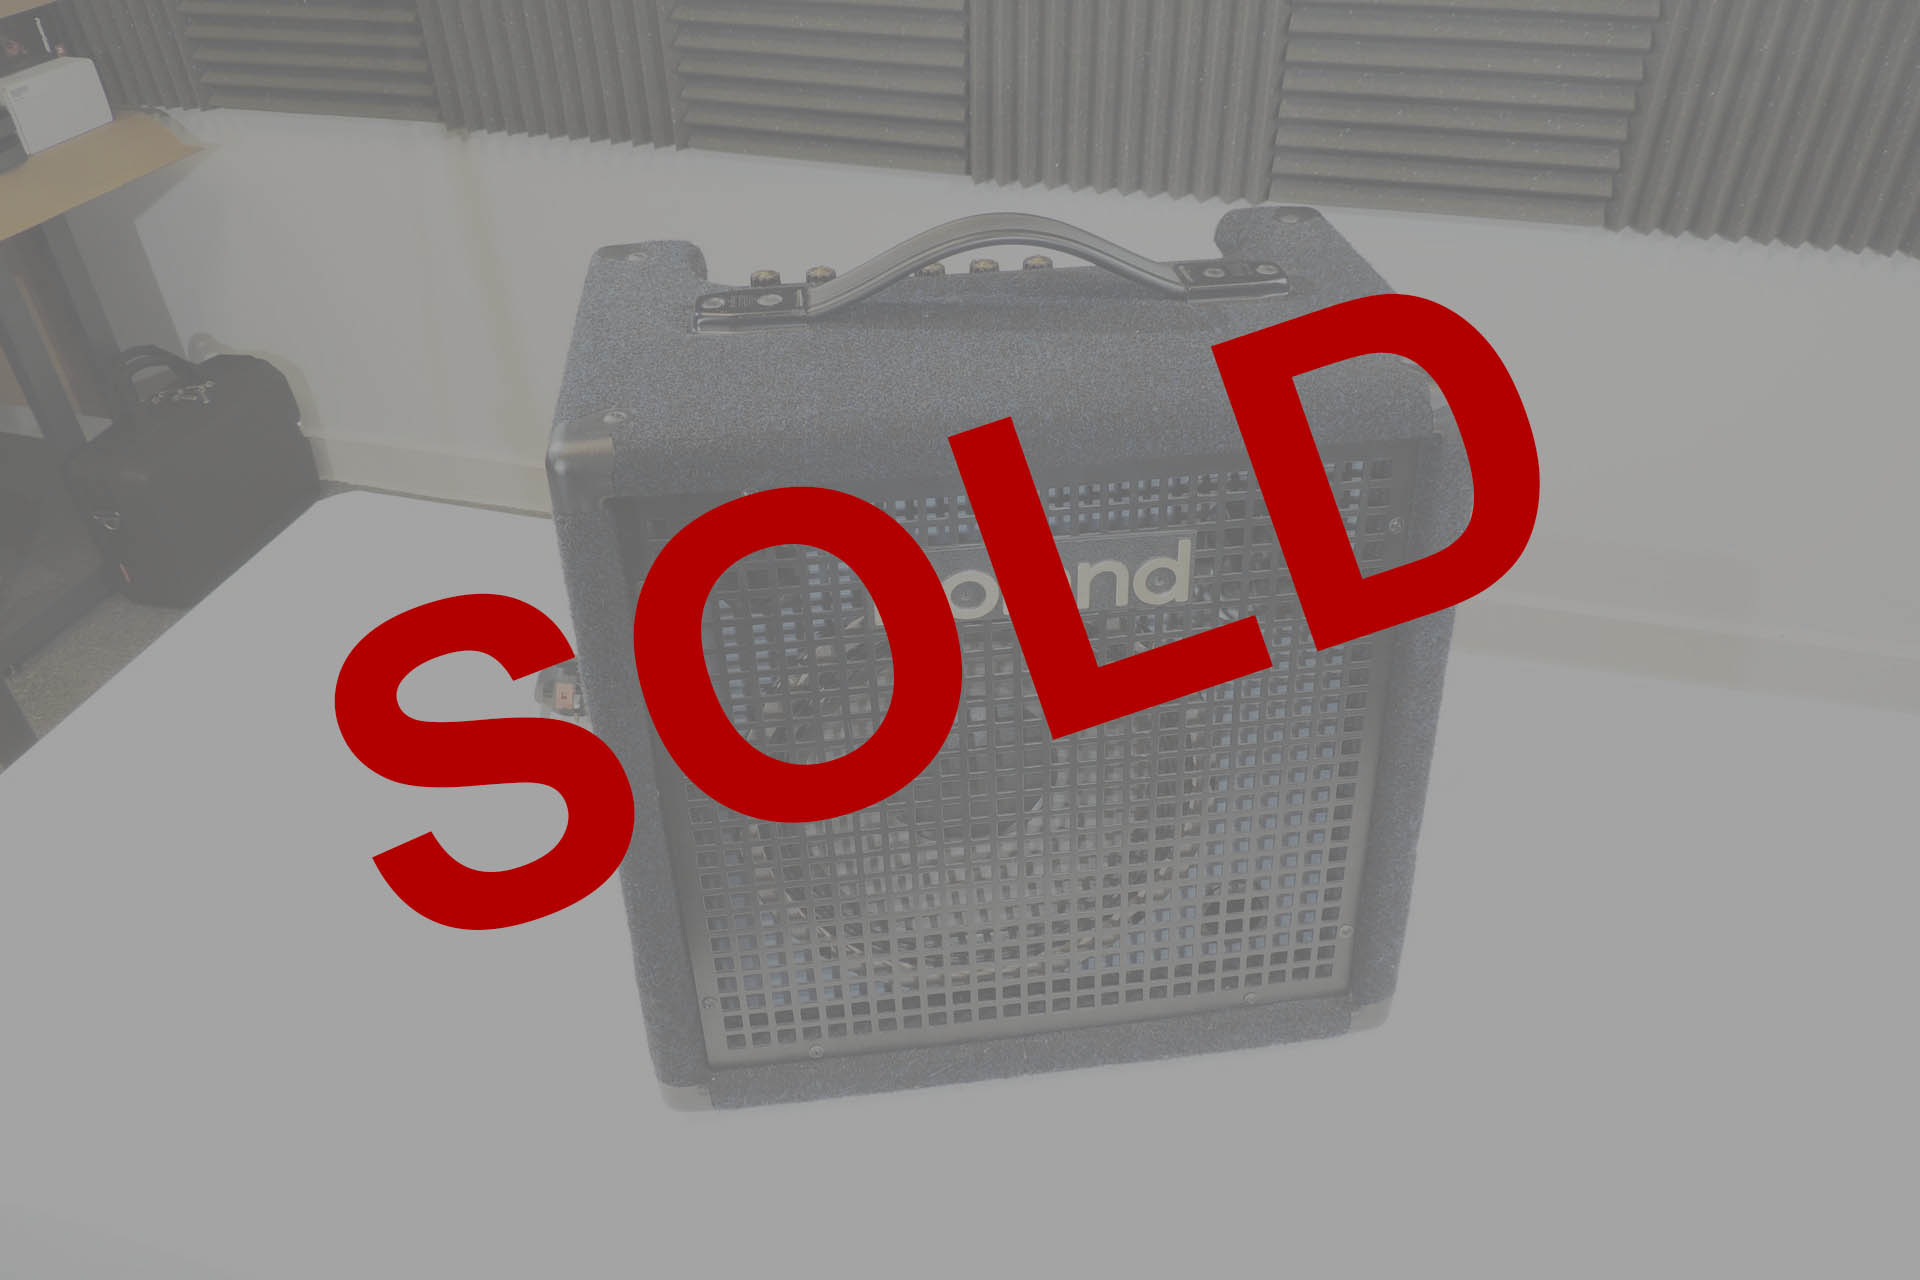 Roland KC-60 sold at Plasma Music